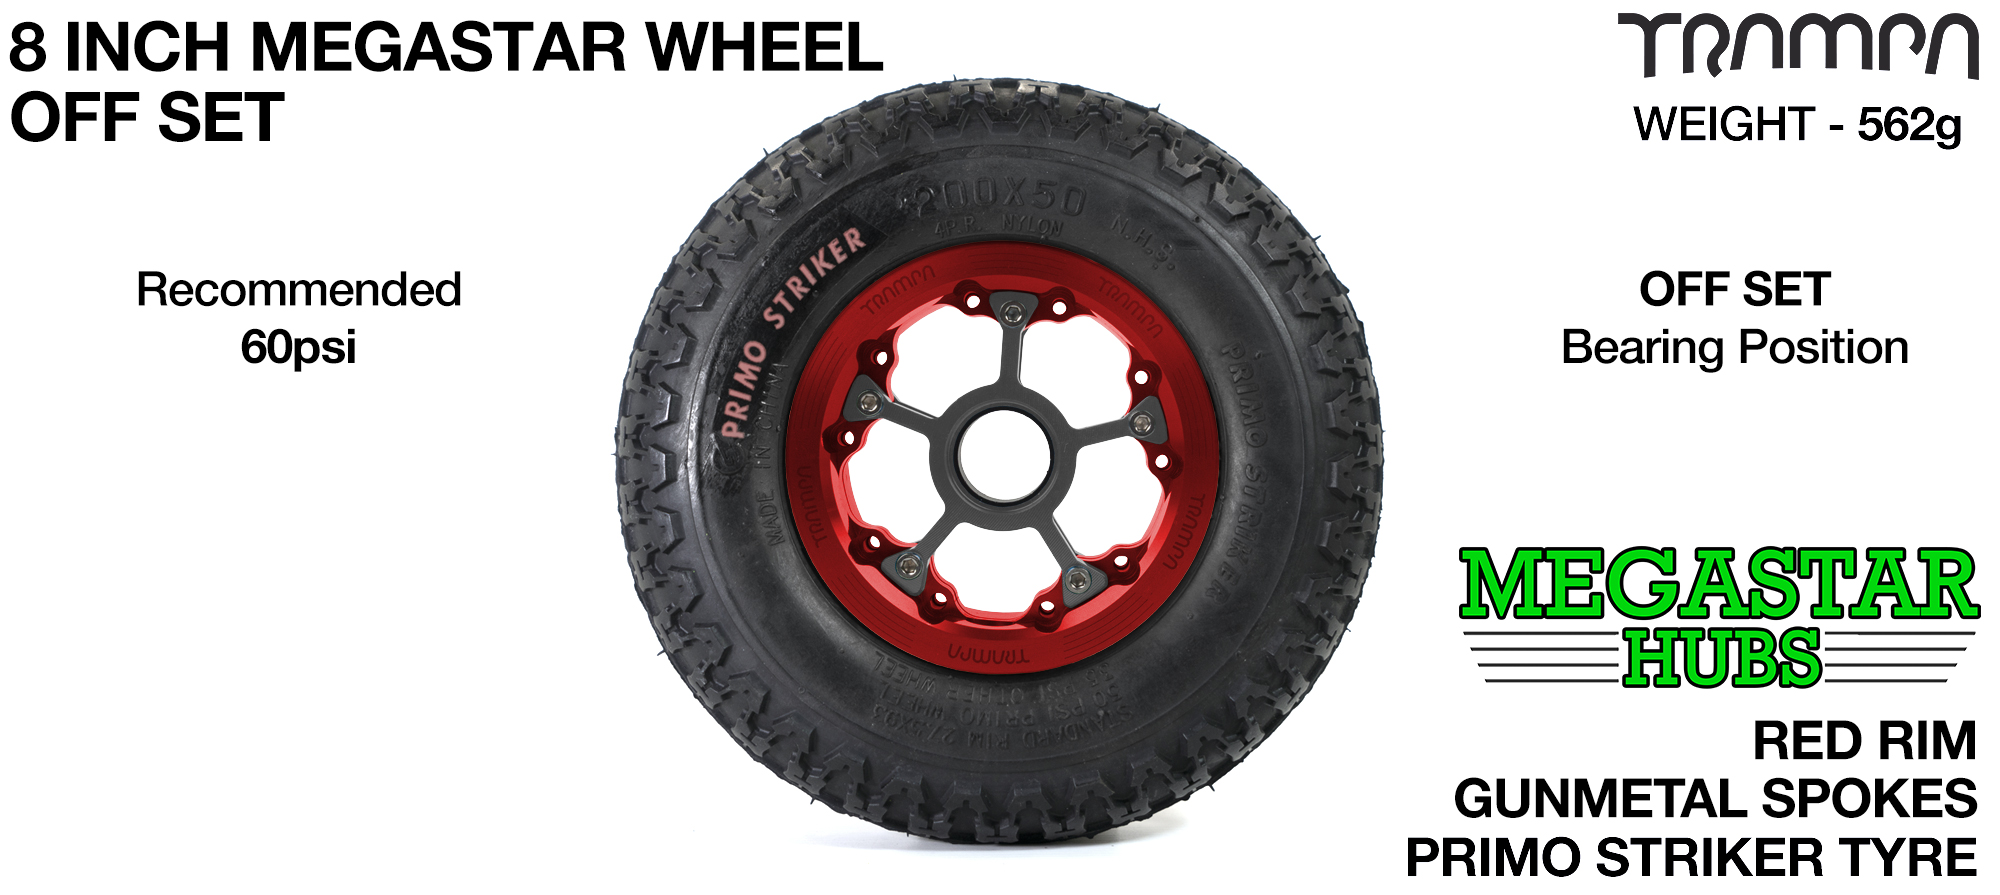 "RED MEGASTAR Rims with GUNMETAL Spokes & 8"" STRIKER Tyres"